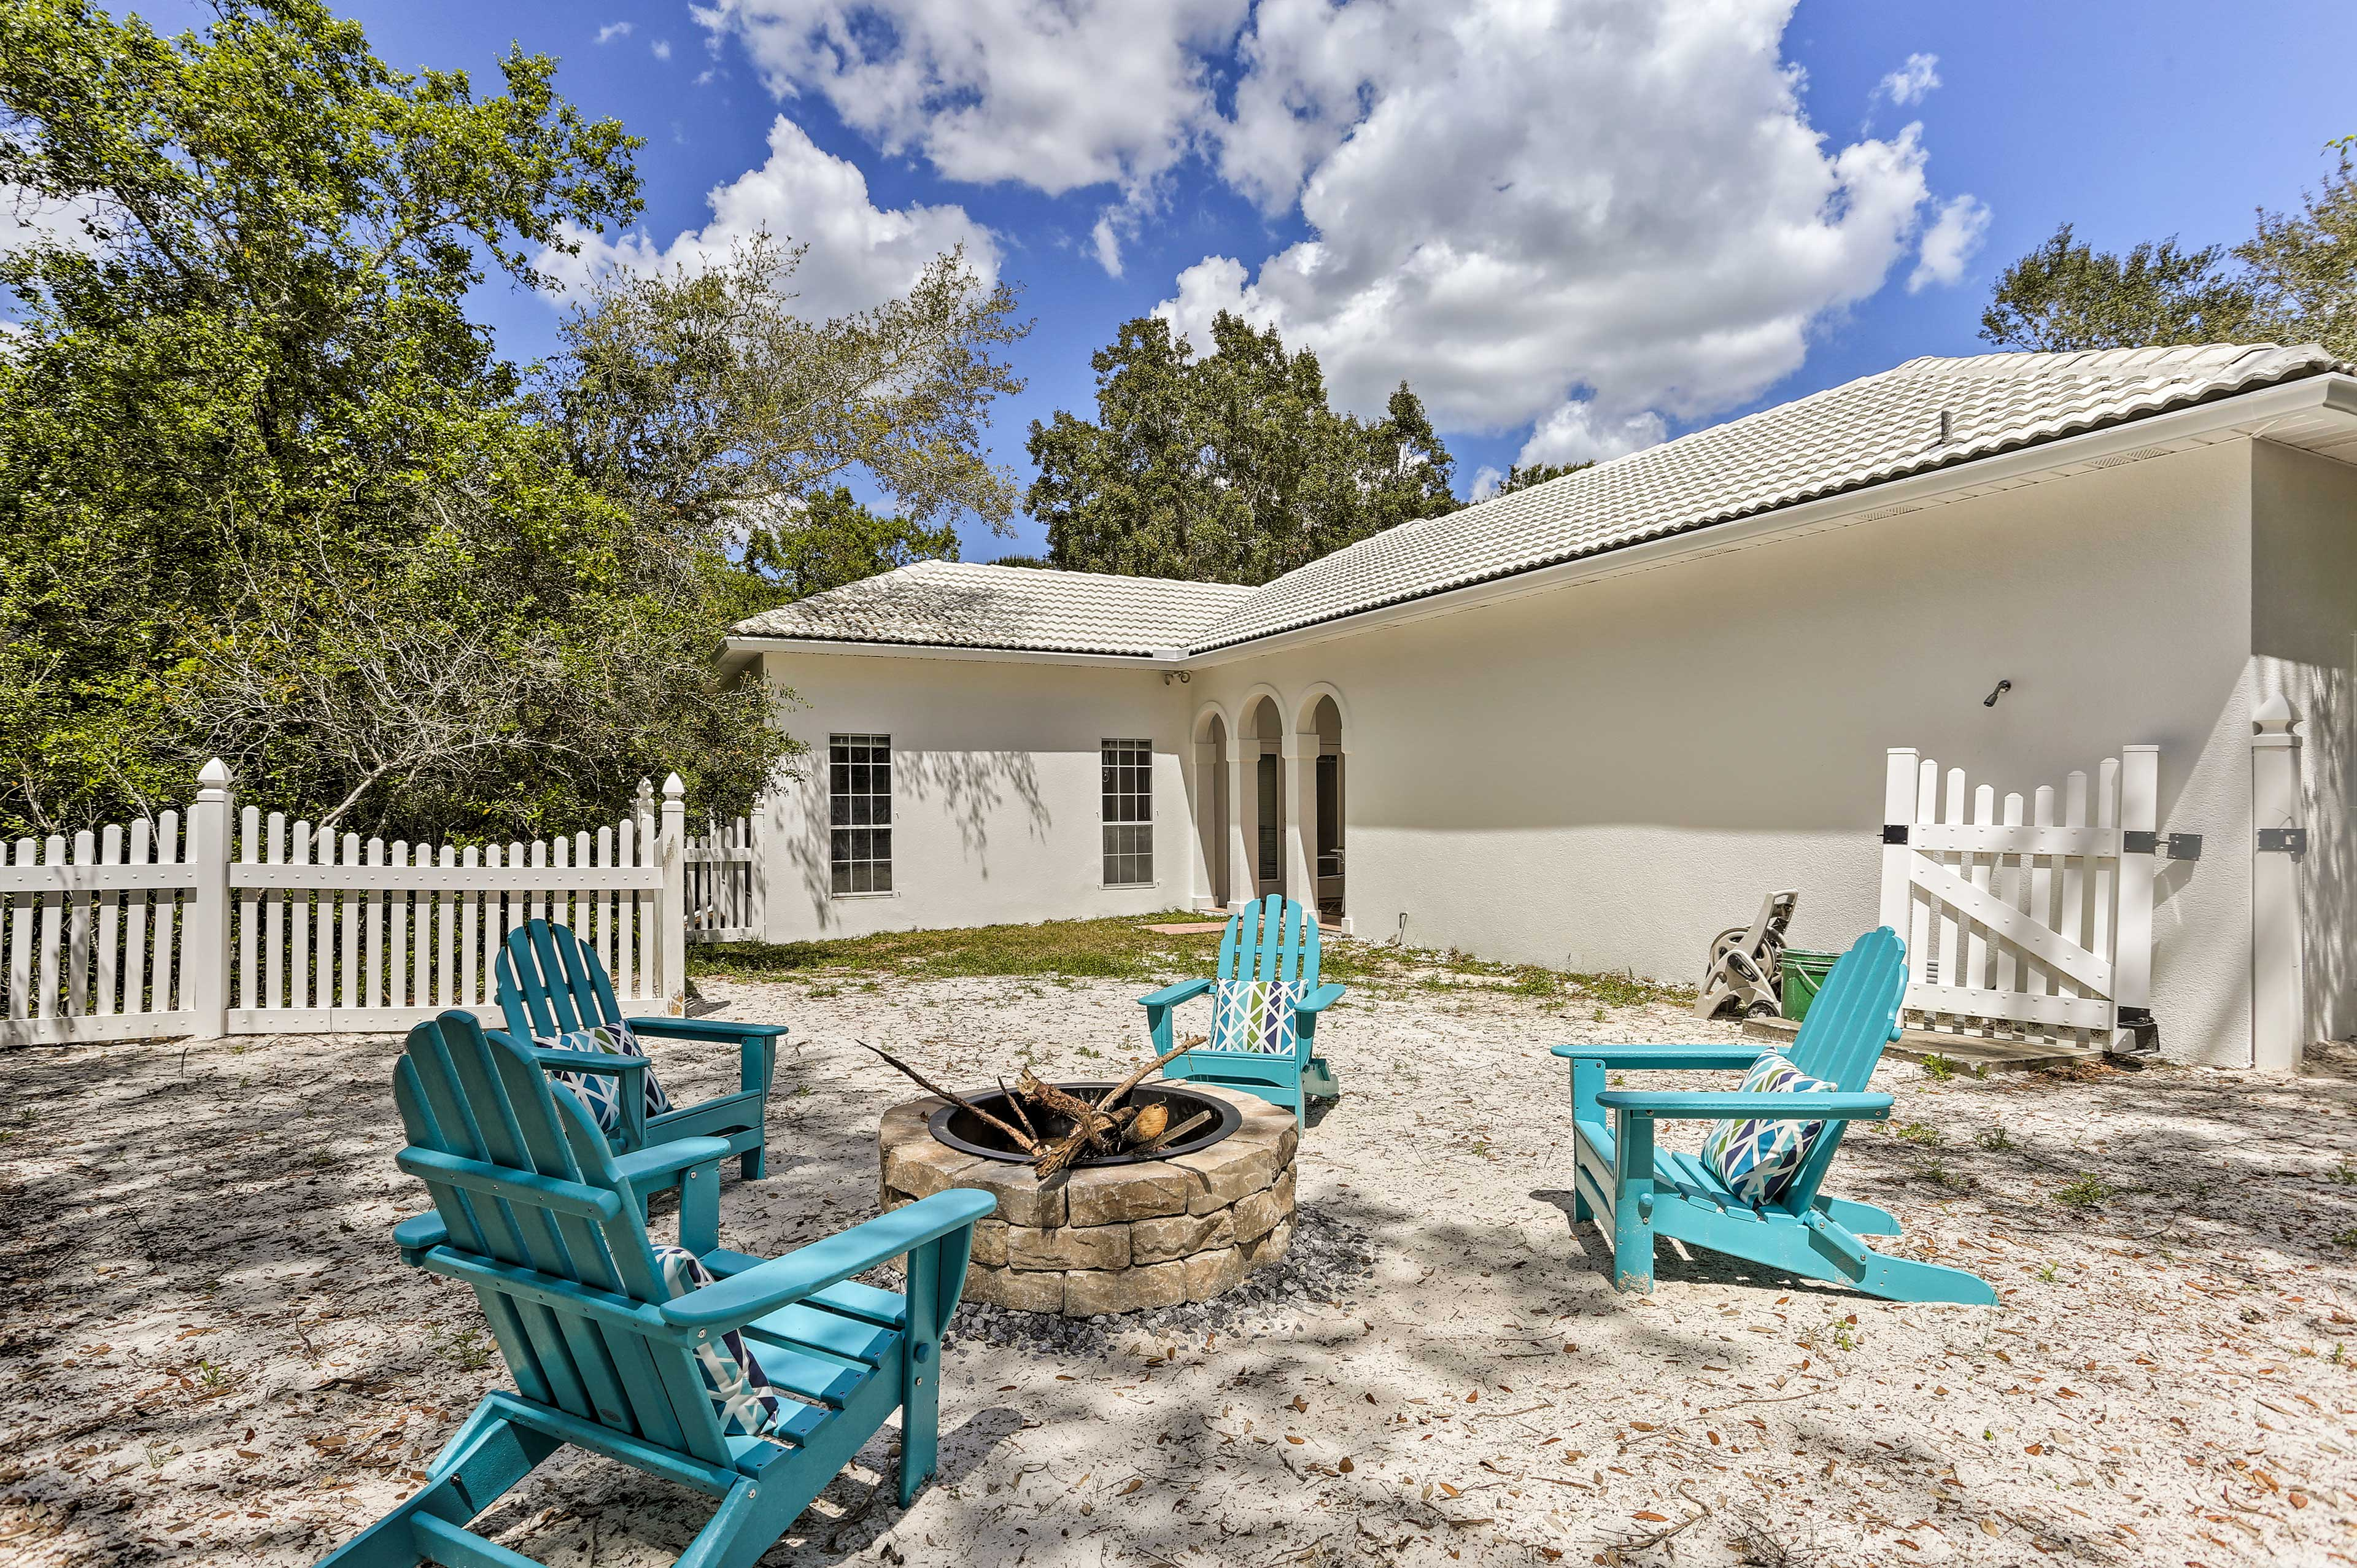 The 2-bed, 2-bath house sits just a walk away from the ocean.